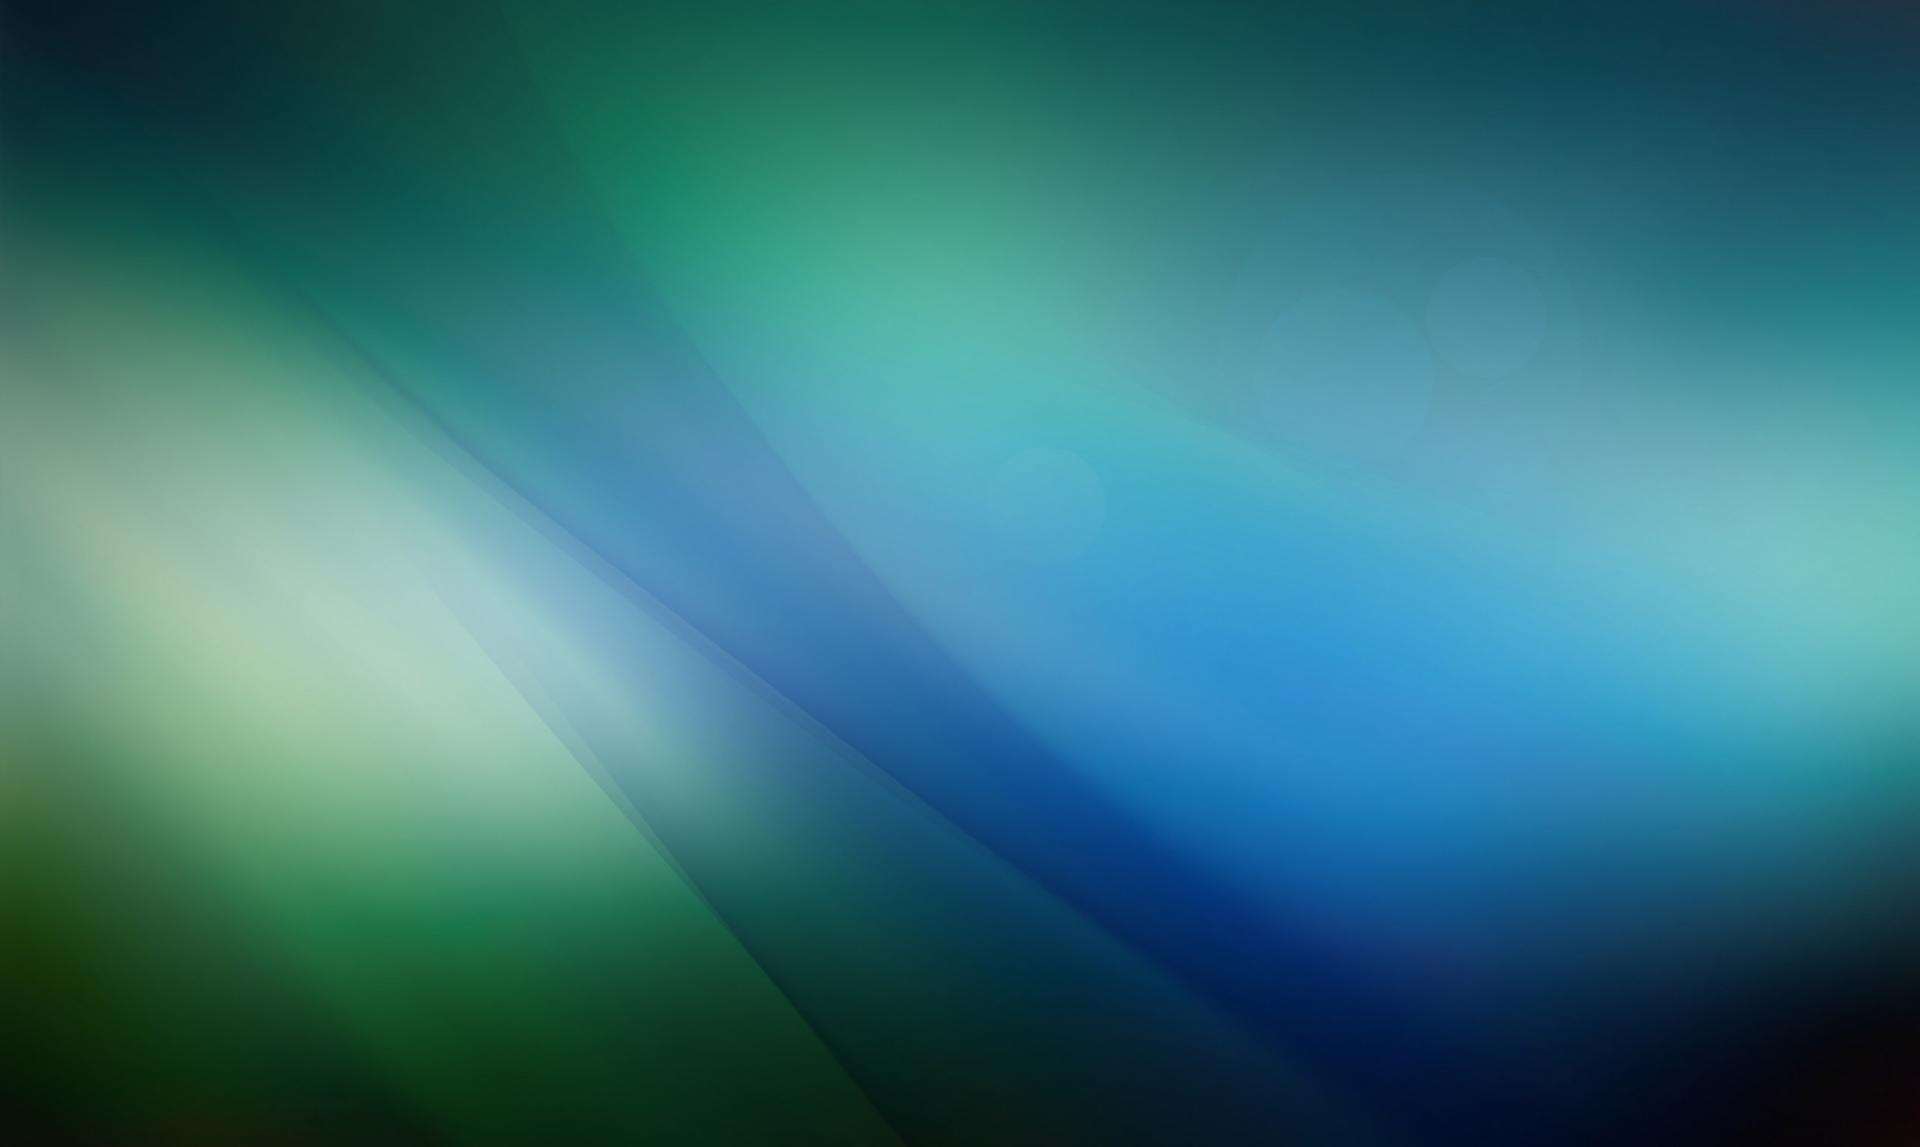 Blue and green curves wallpapers HD quality